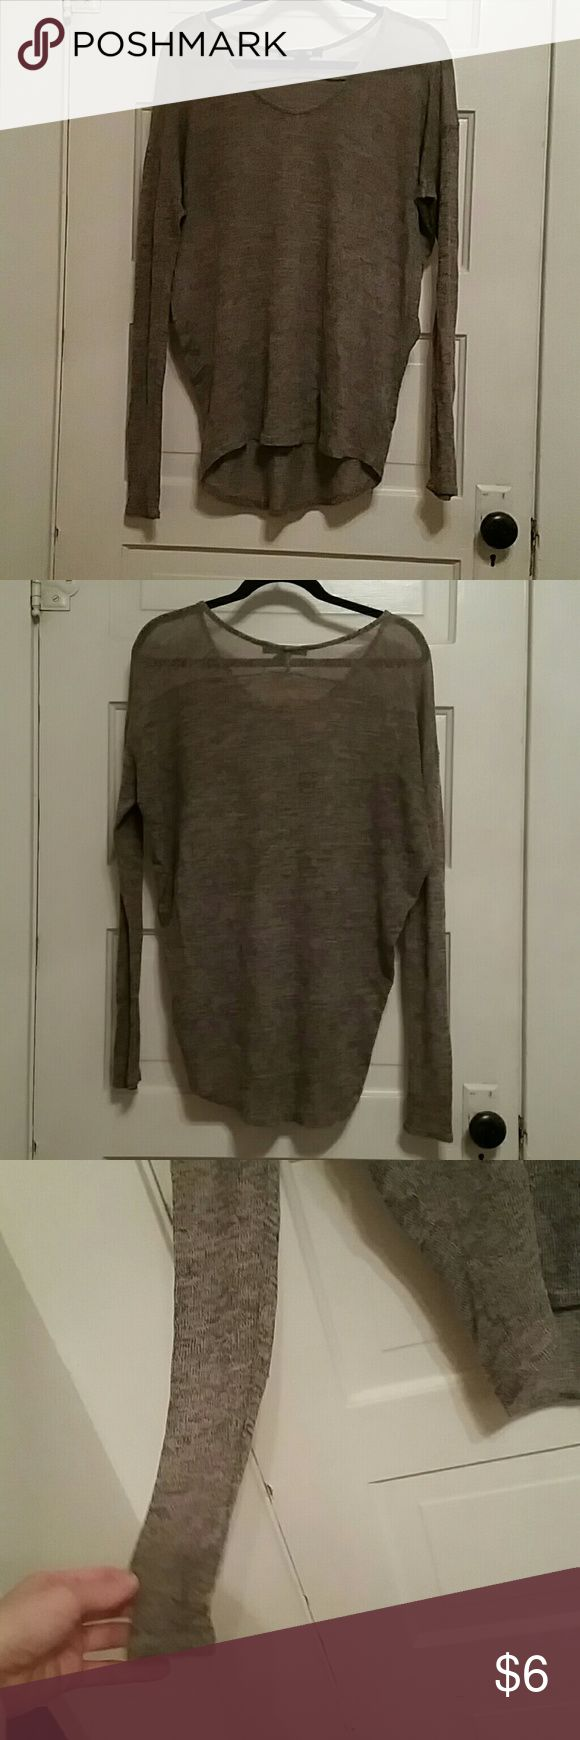 Light brown slouchy shirt Light brown color, slouchy long sleeve scoop neck. arms are a bit small, only a little stretch Forever 21 Tops Sweatshirts & Hoodies